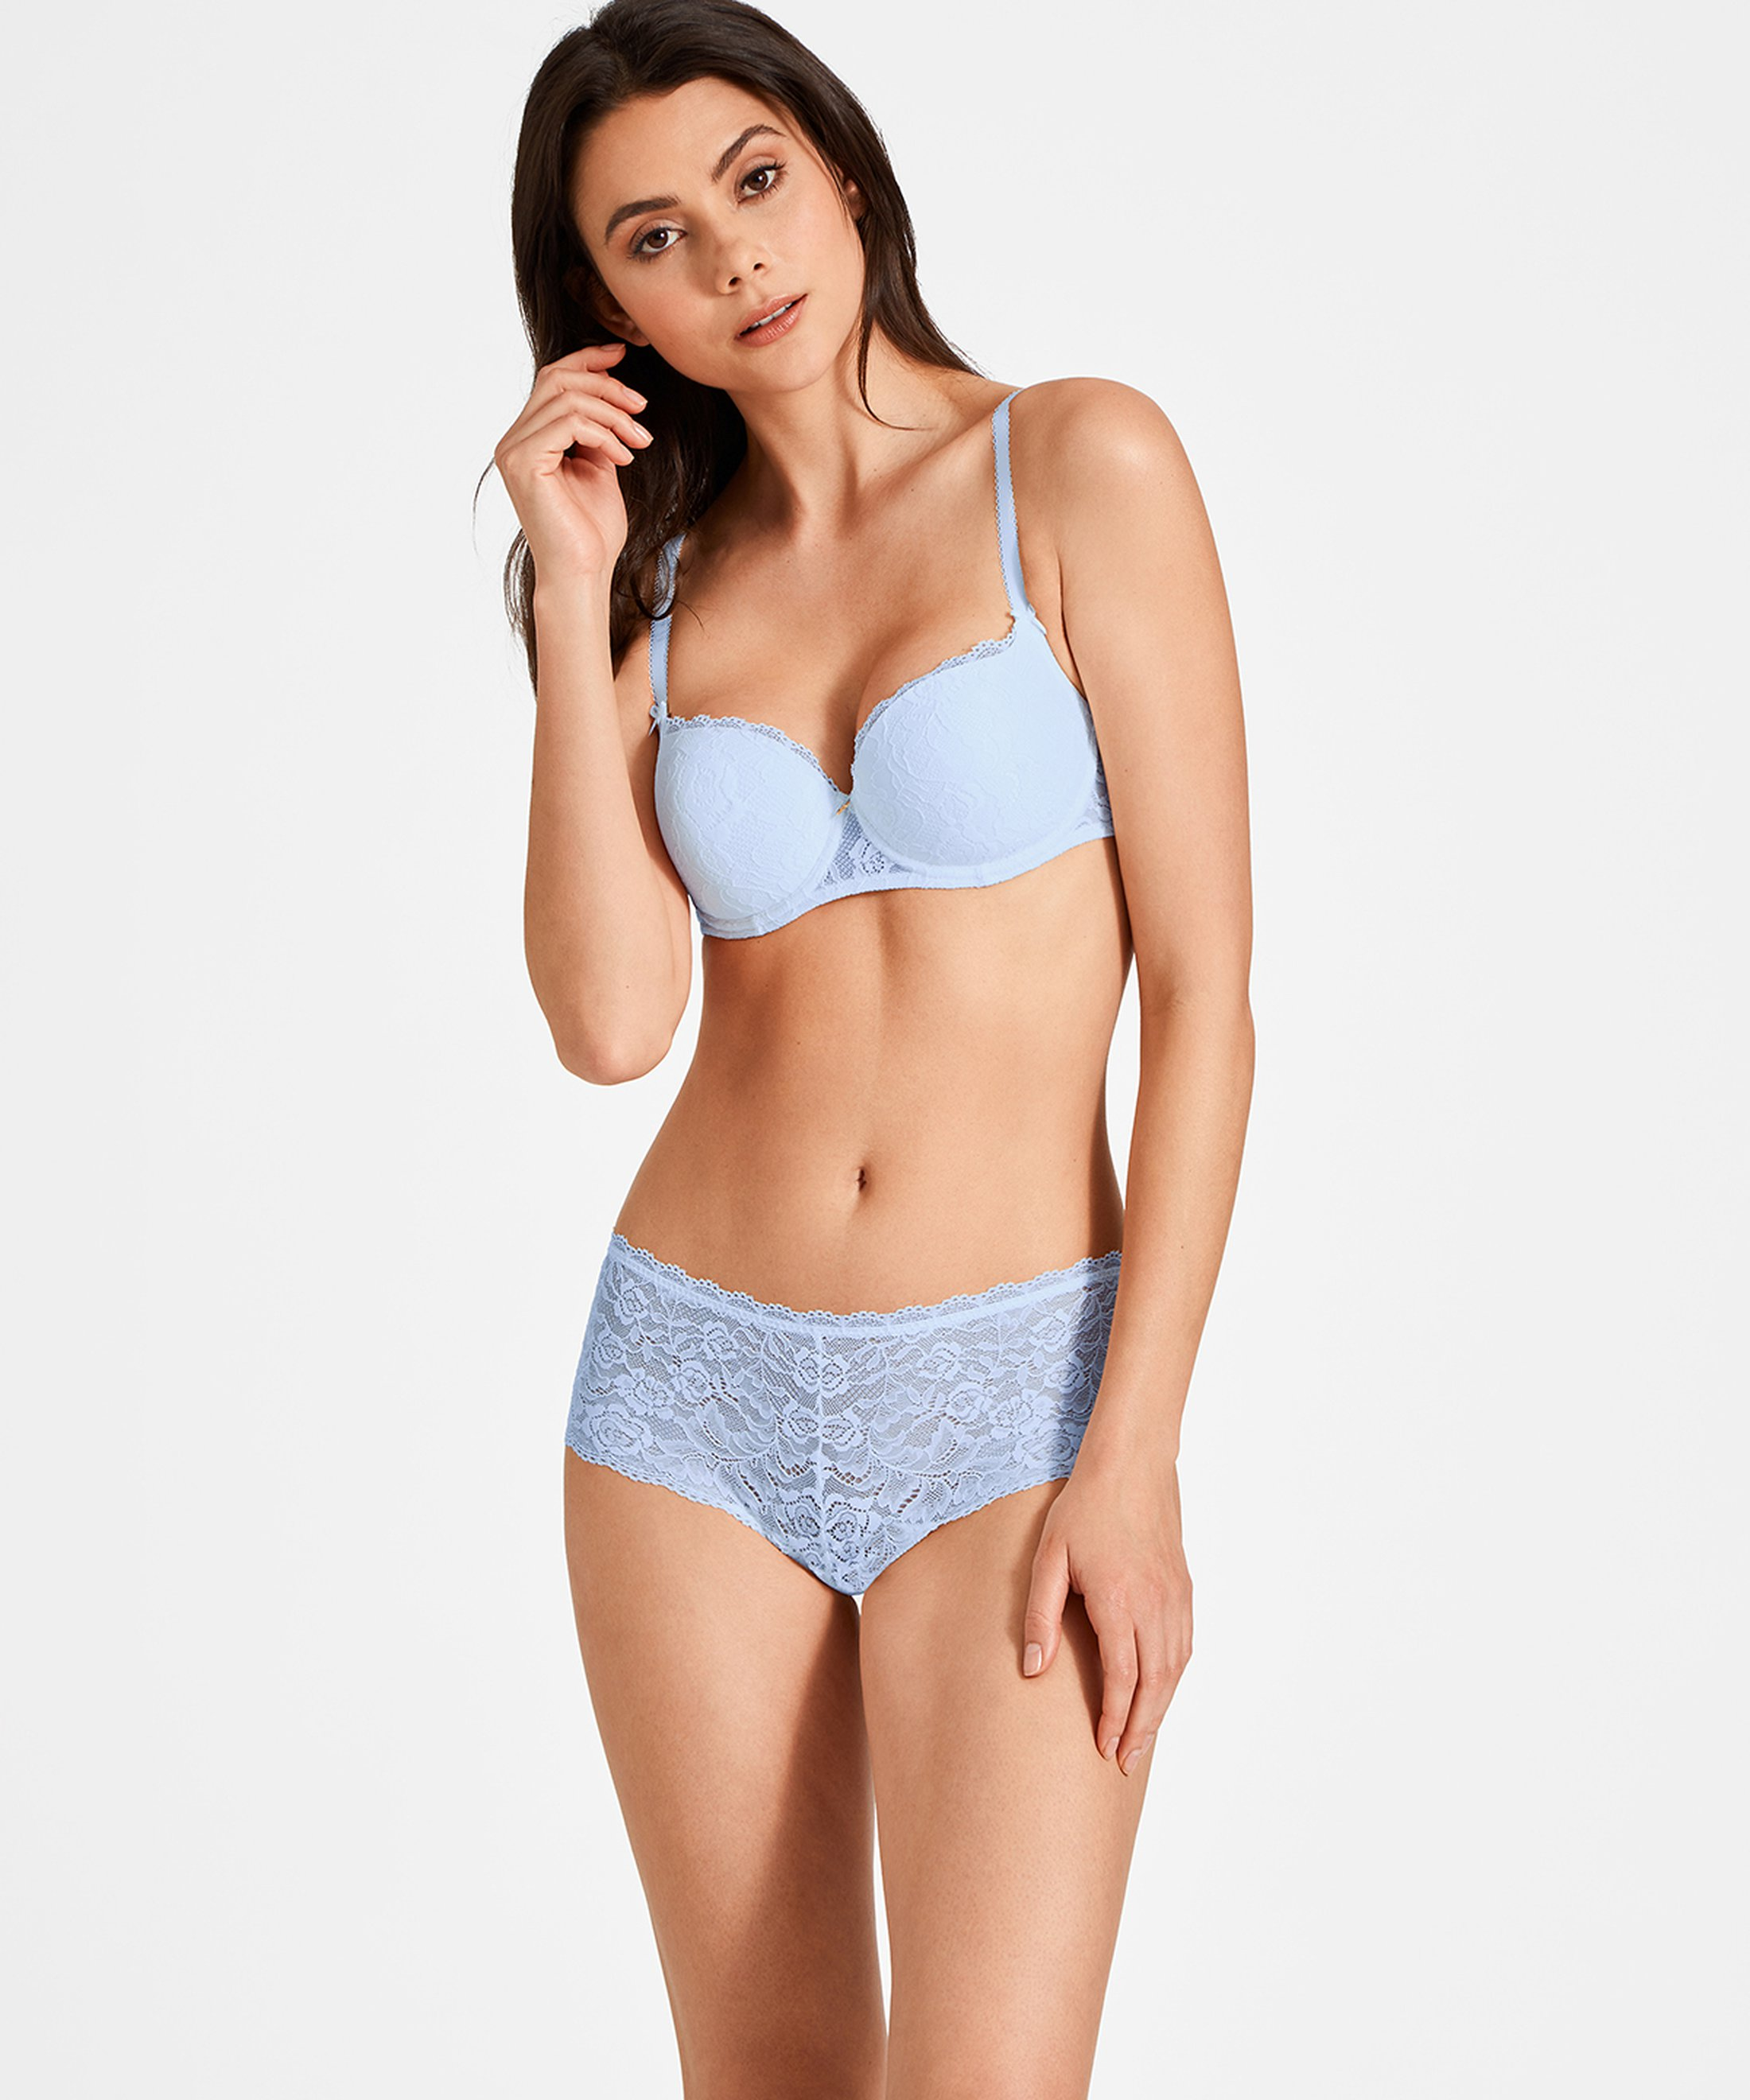 ROSESSENCE Shorty St-Tropez Powder Blue | Aubade